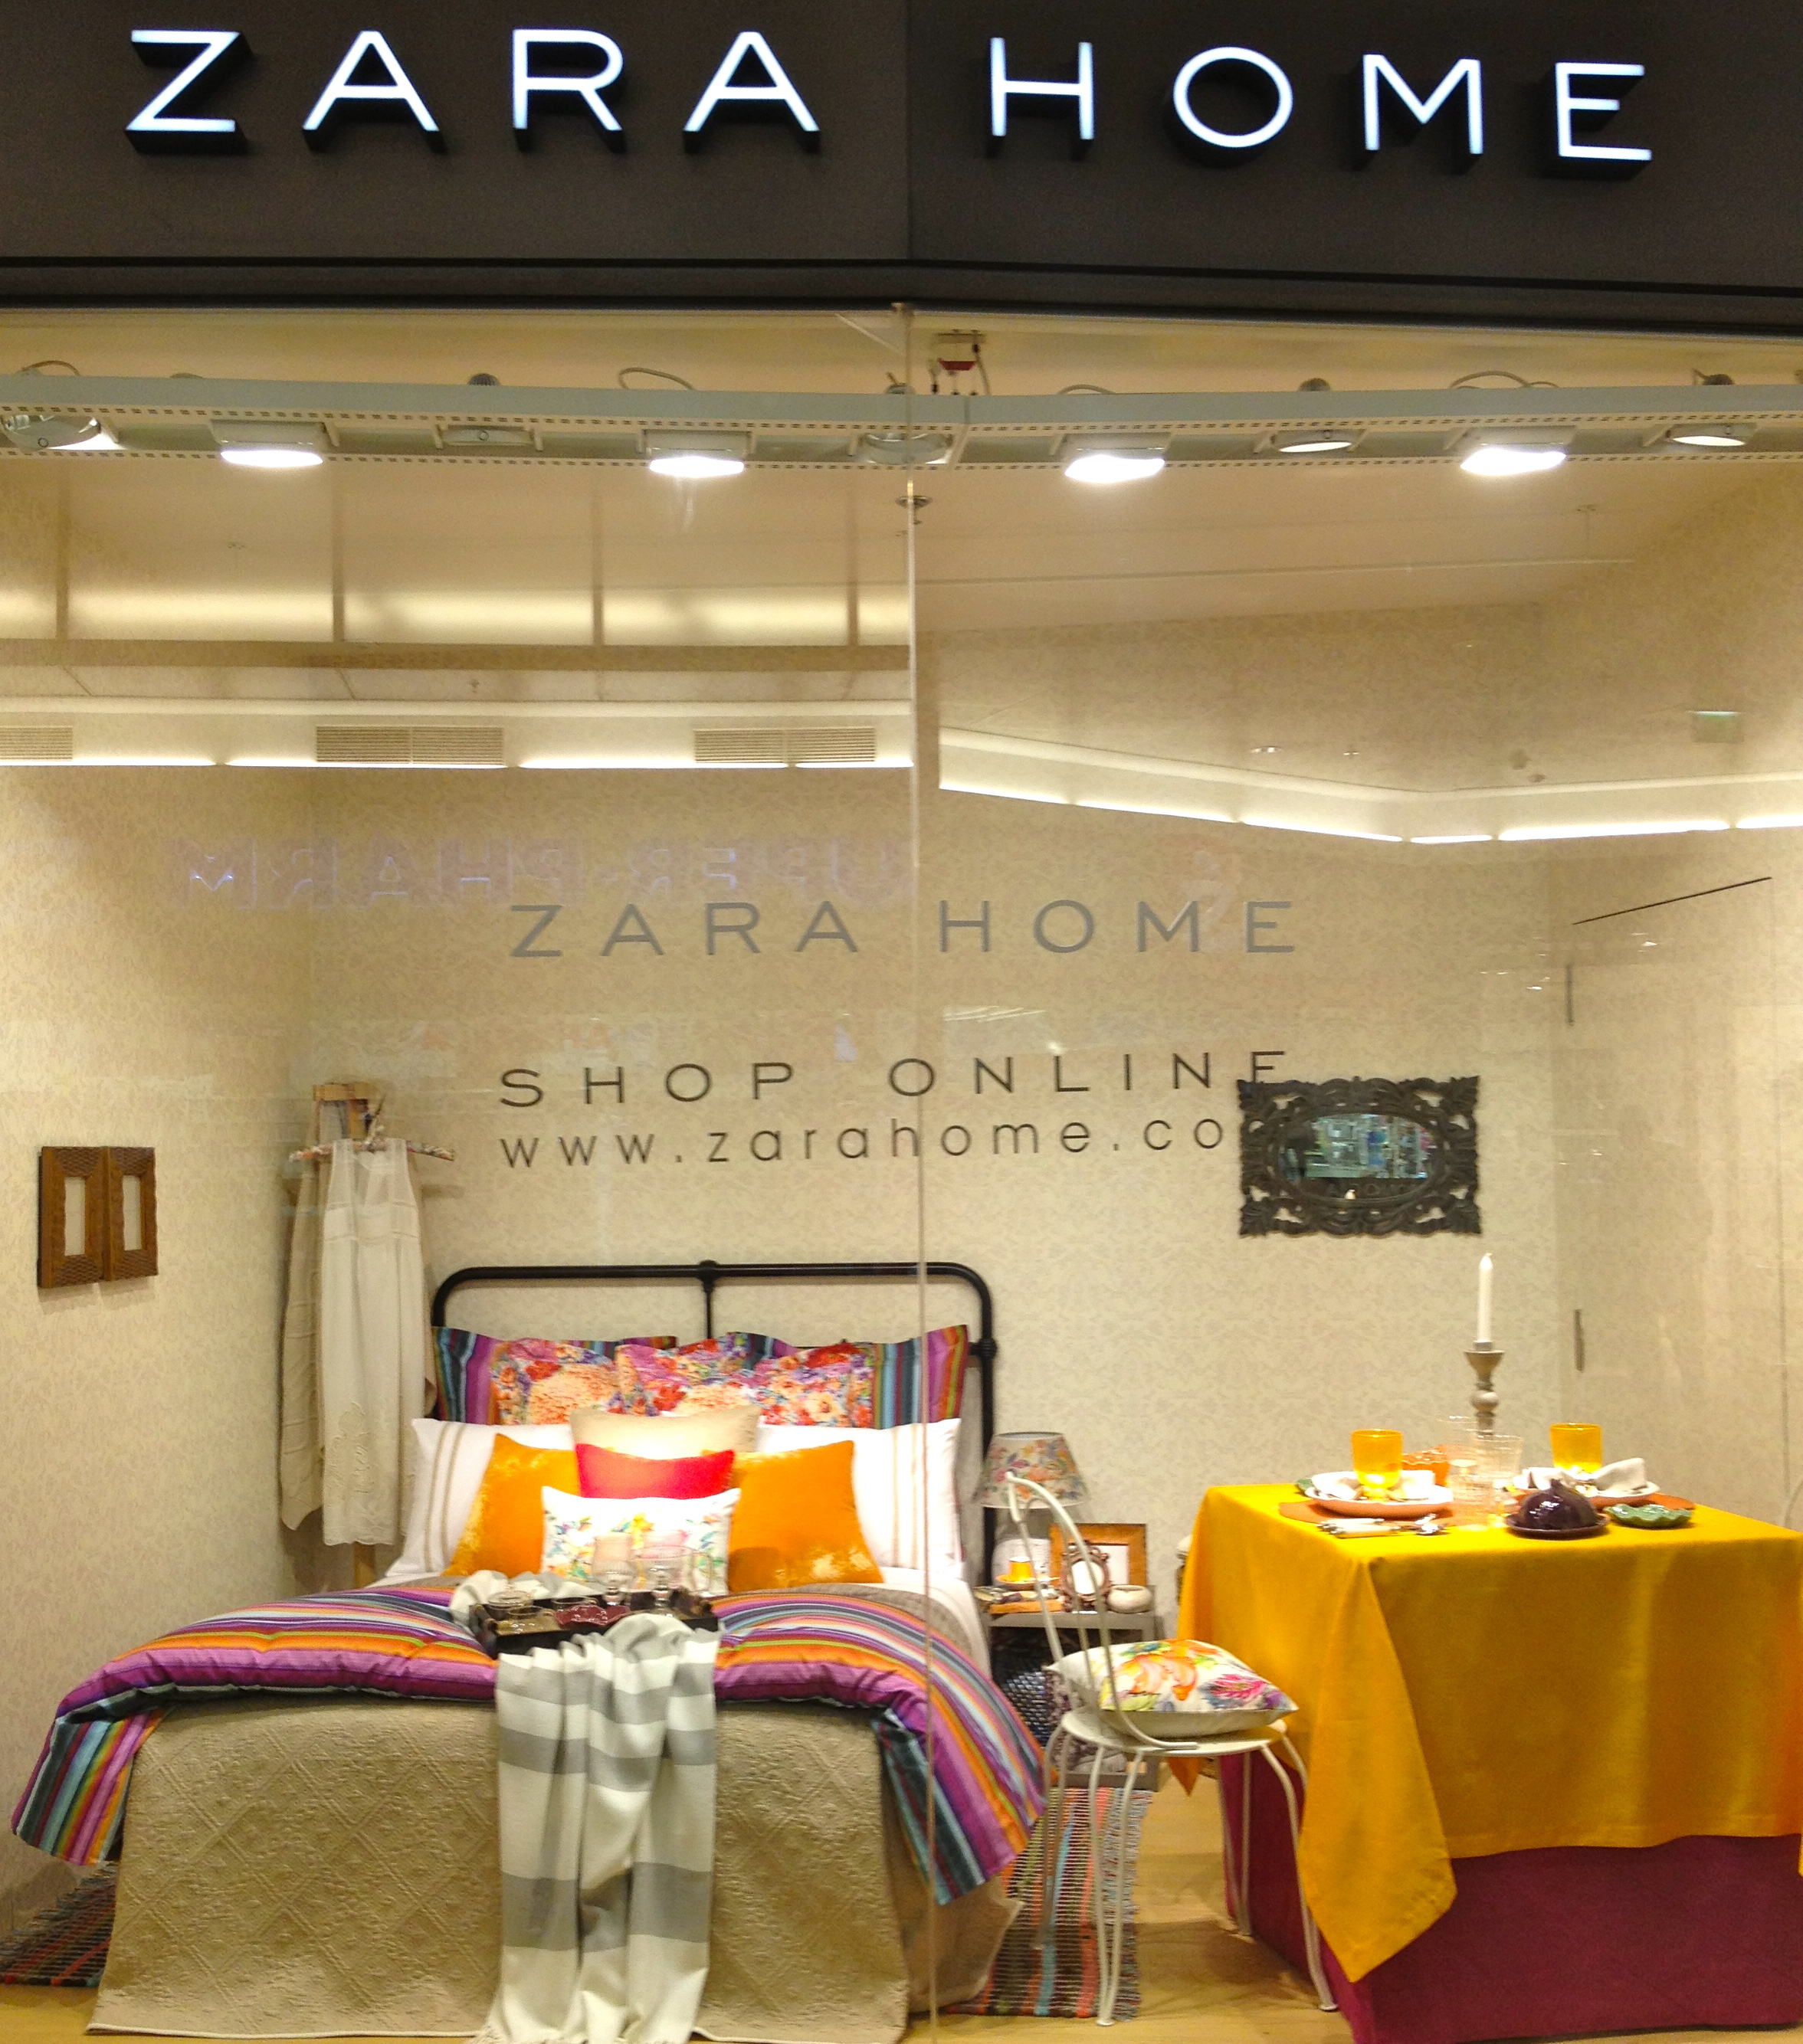 This Month Zara Home Debuted In The US Online! The Product Range Features  Home Textiles: Bed, Bath And Table Linens, In Addition To Select Furniture,  ...